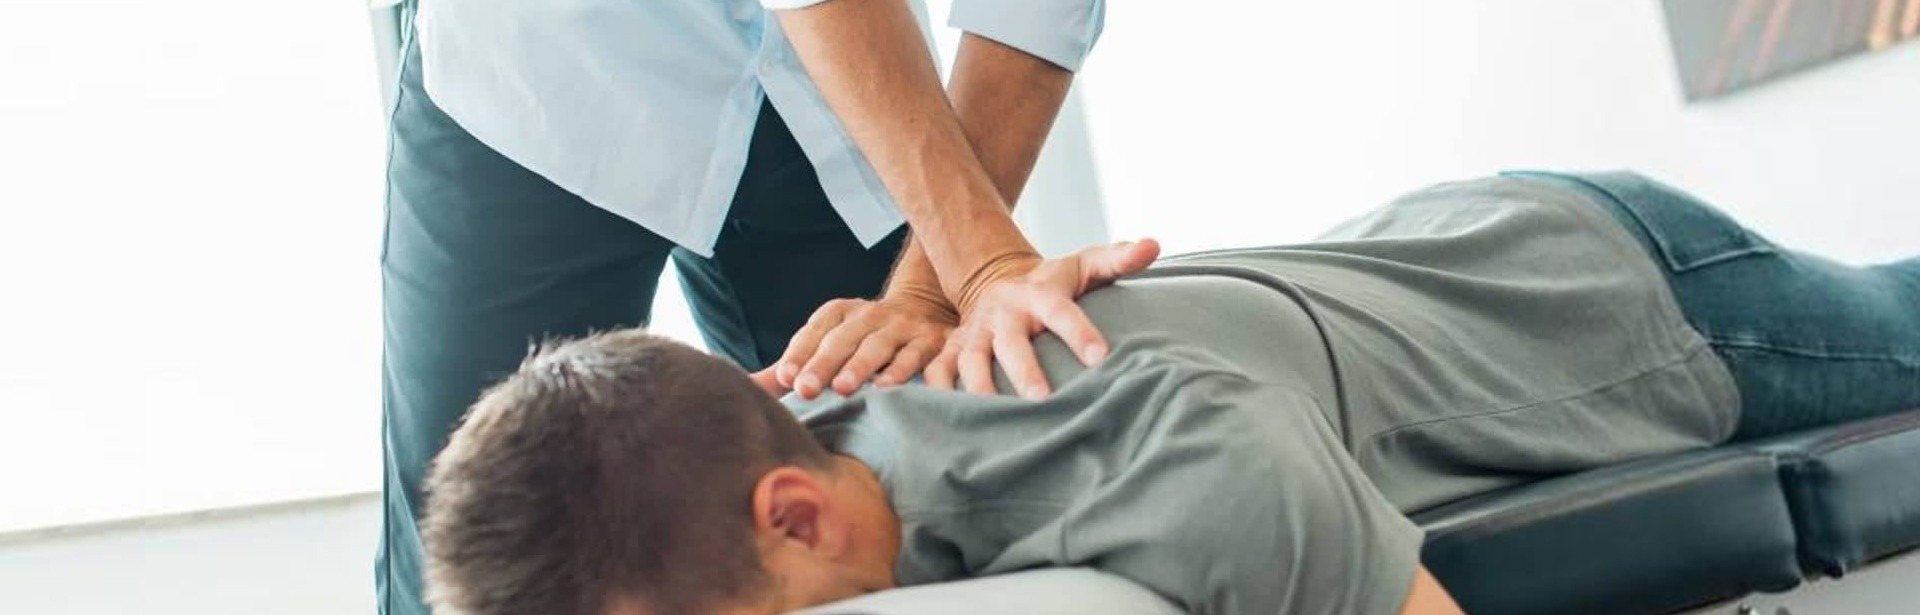 Chiropractic Adjustment - 3 Efficient Ways to Use Manipulation to Ease and Treat Stress.